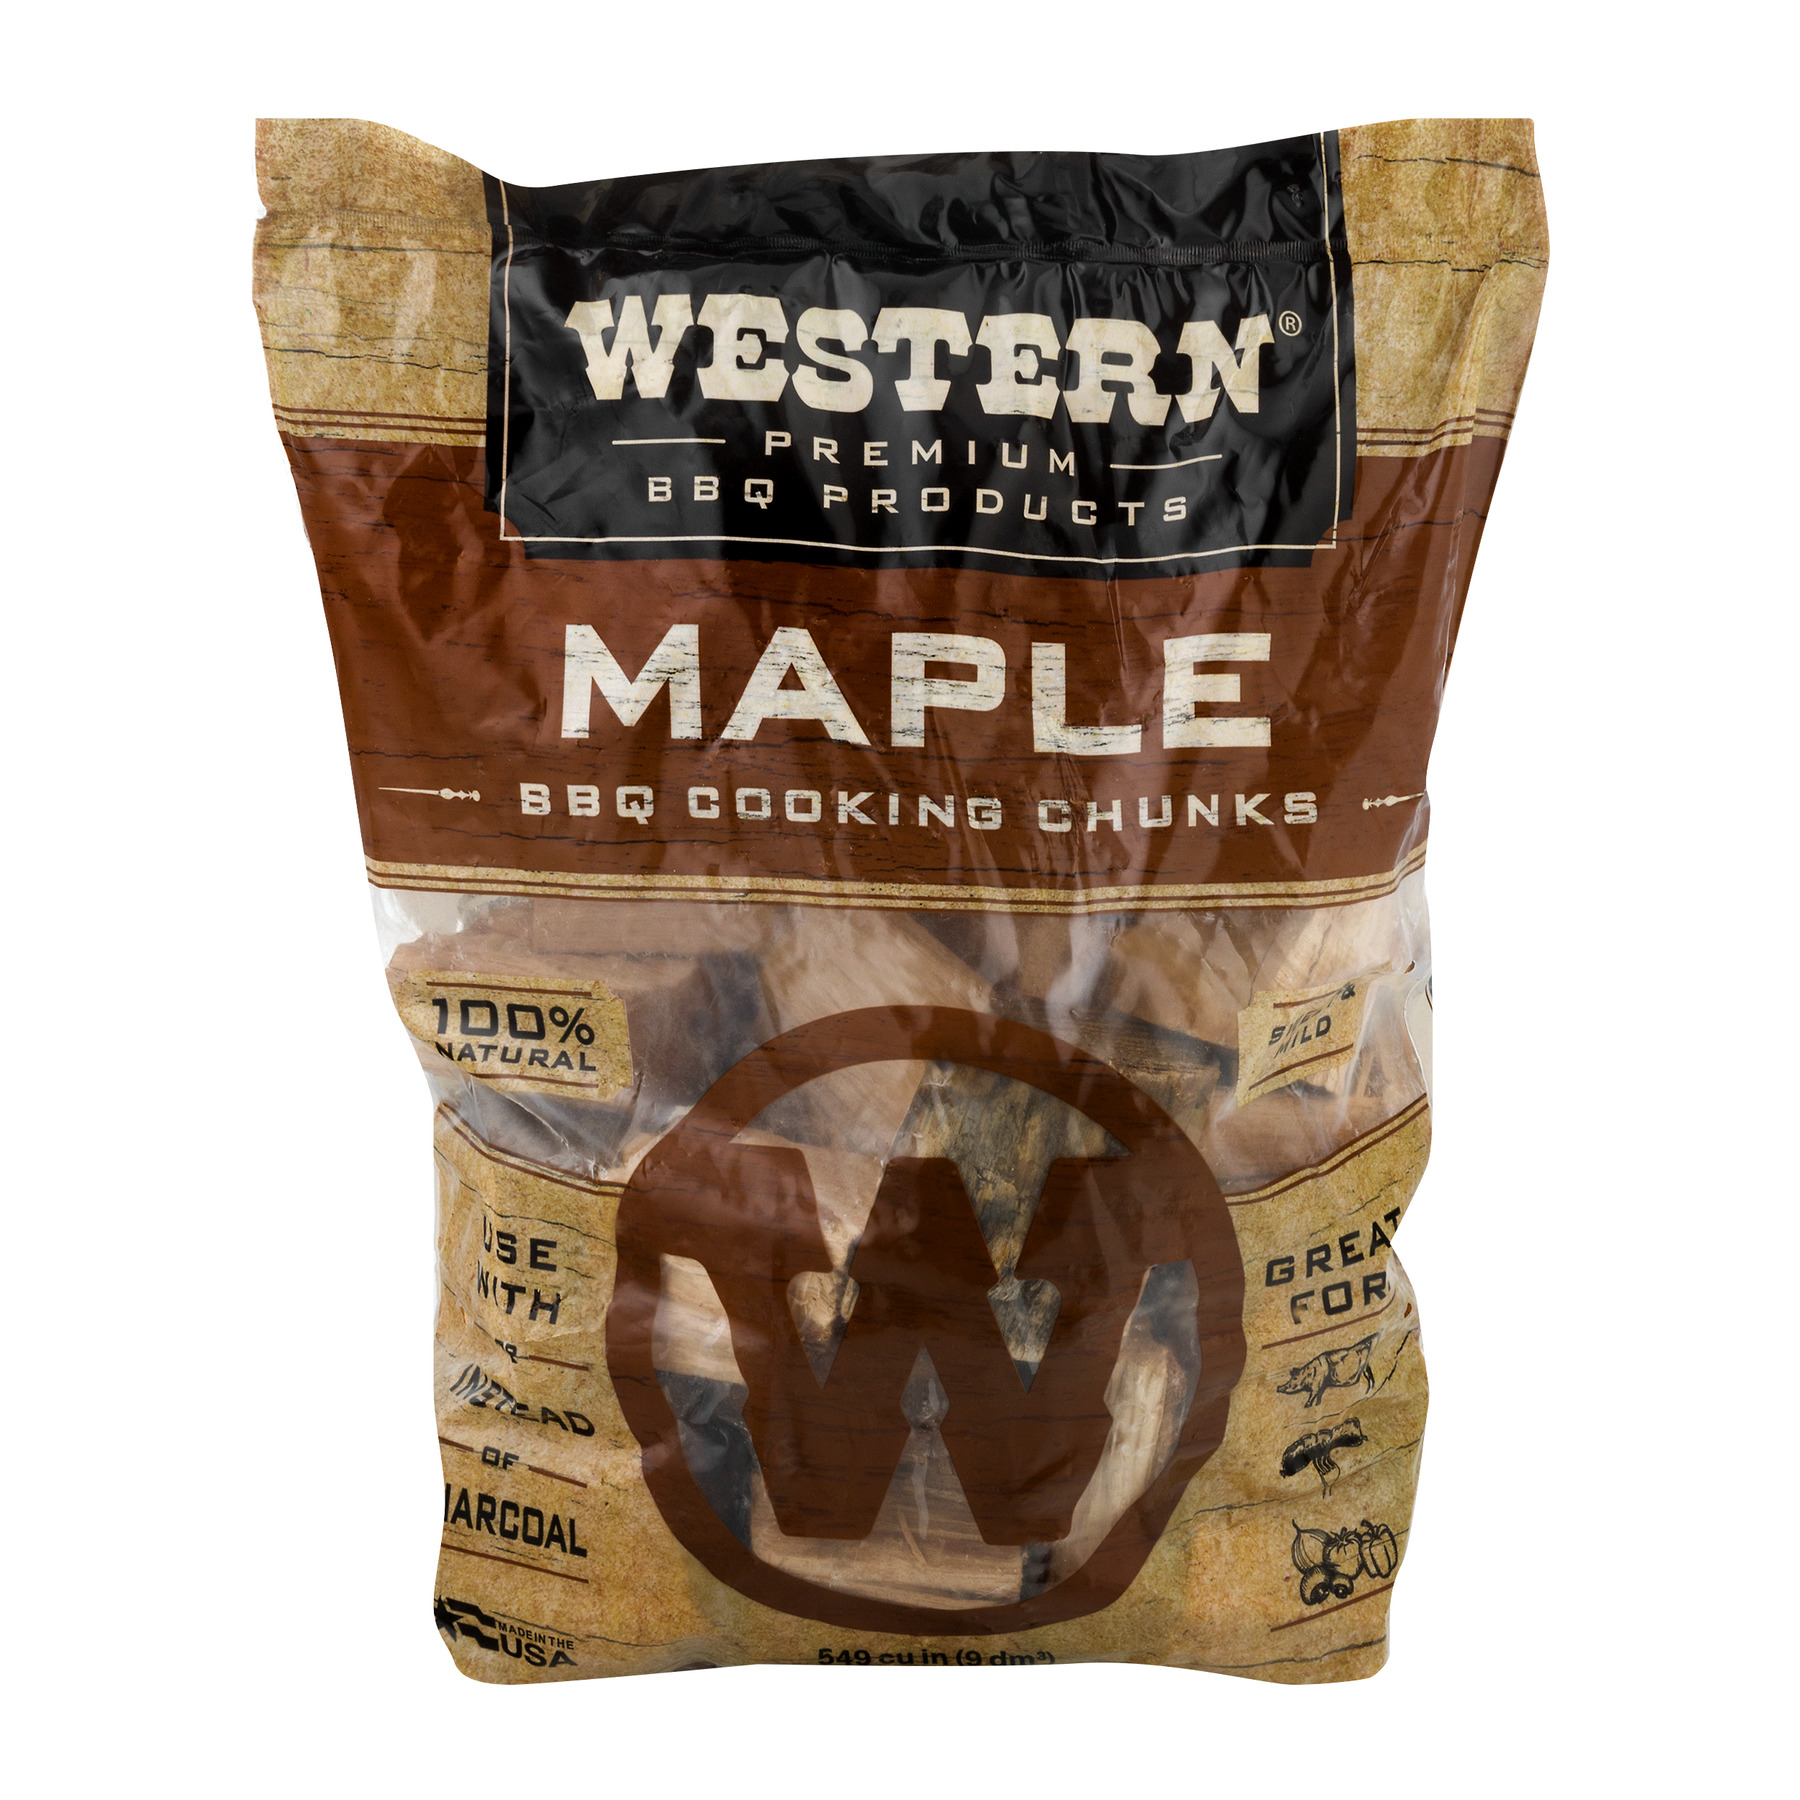 Western Premium BBQ Products 549CUIN Maple Cooking Chunks